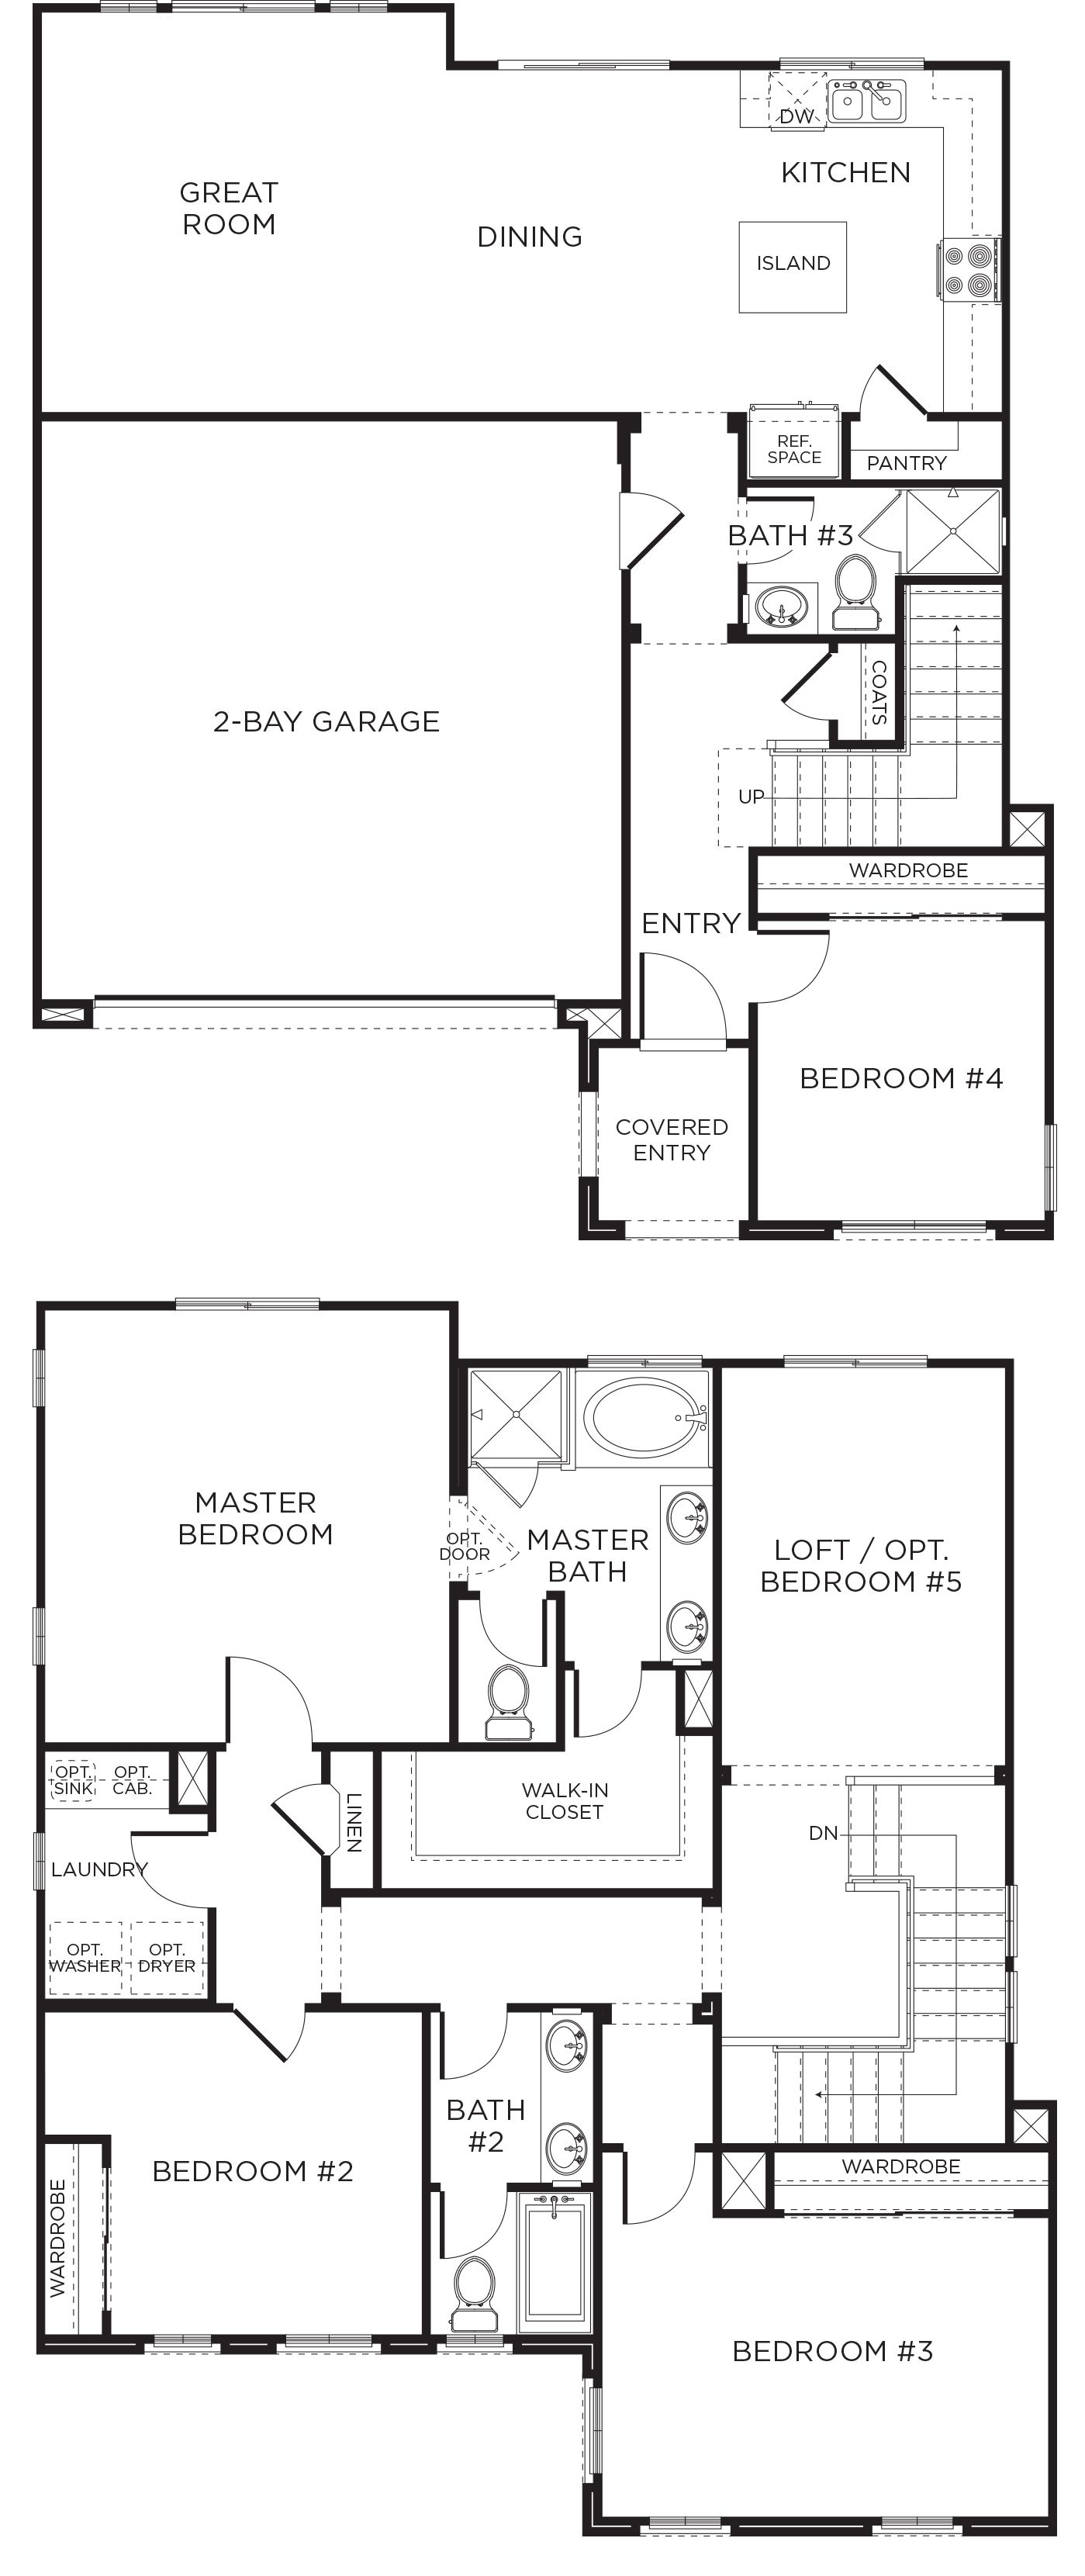 New parkview plan 2ar at ocean view hills homes at - 4 bedroom house for sale san diego ...